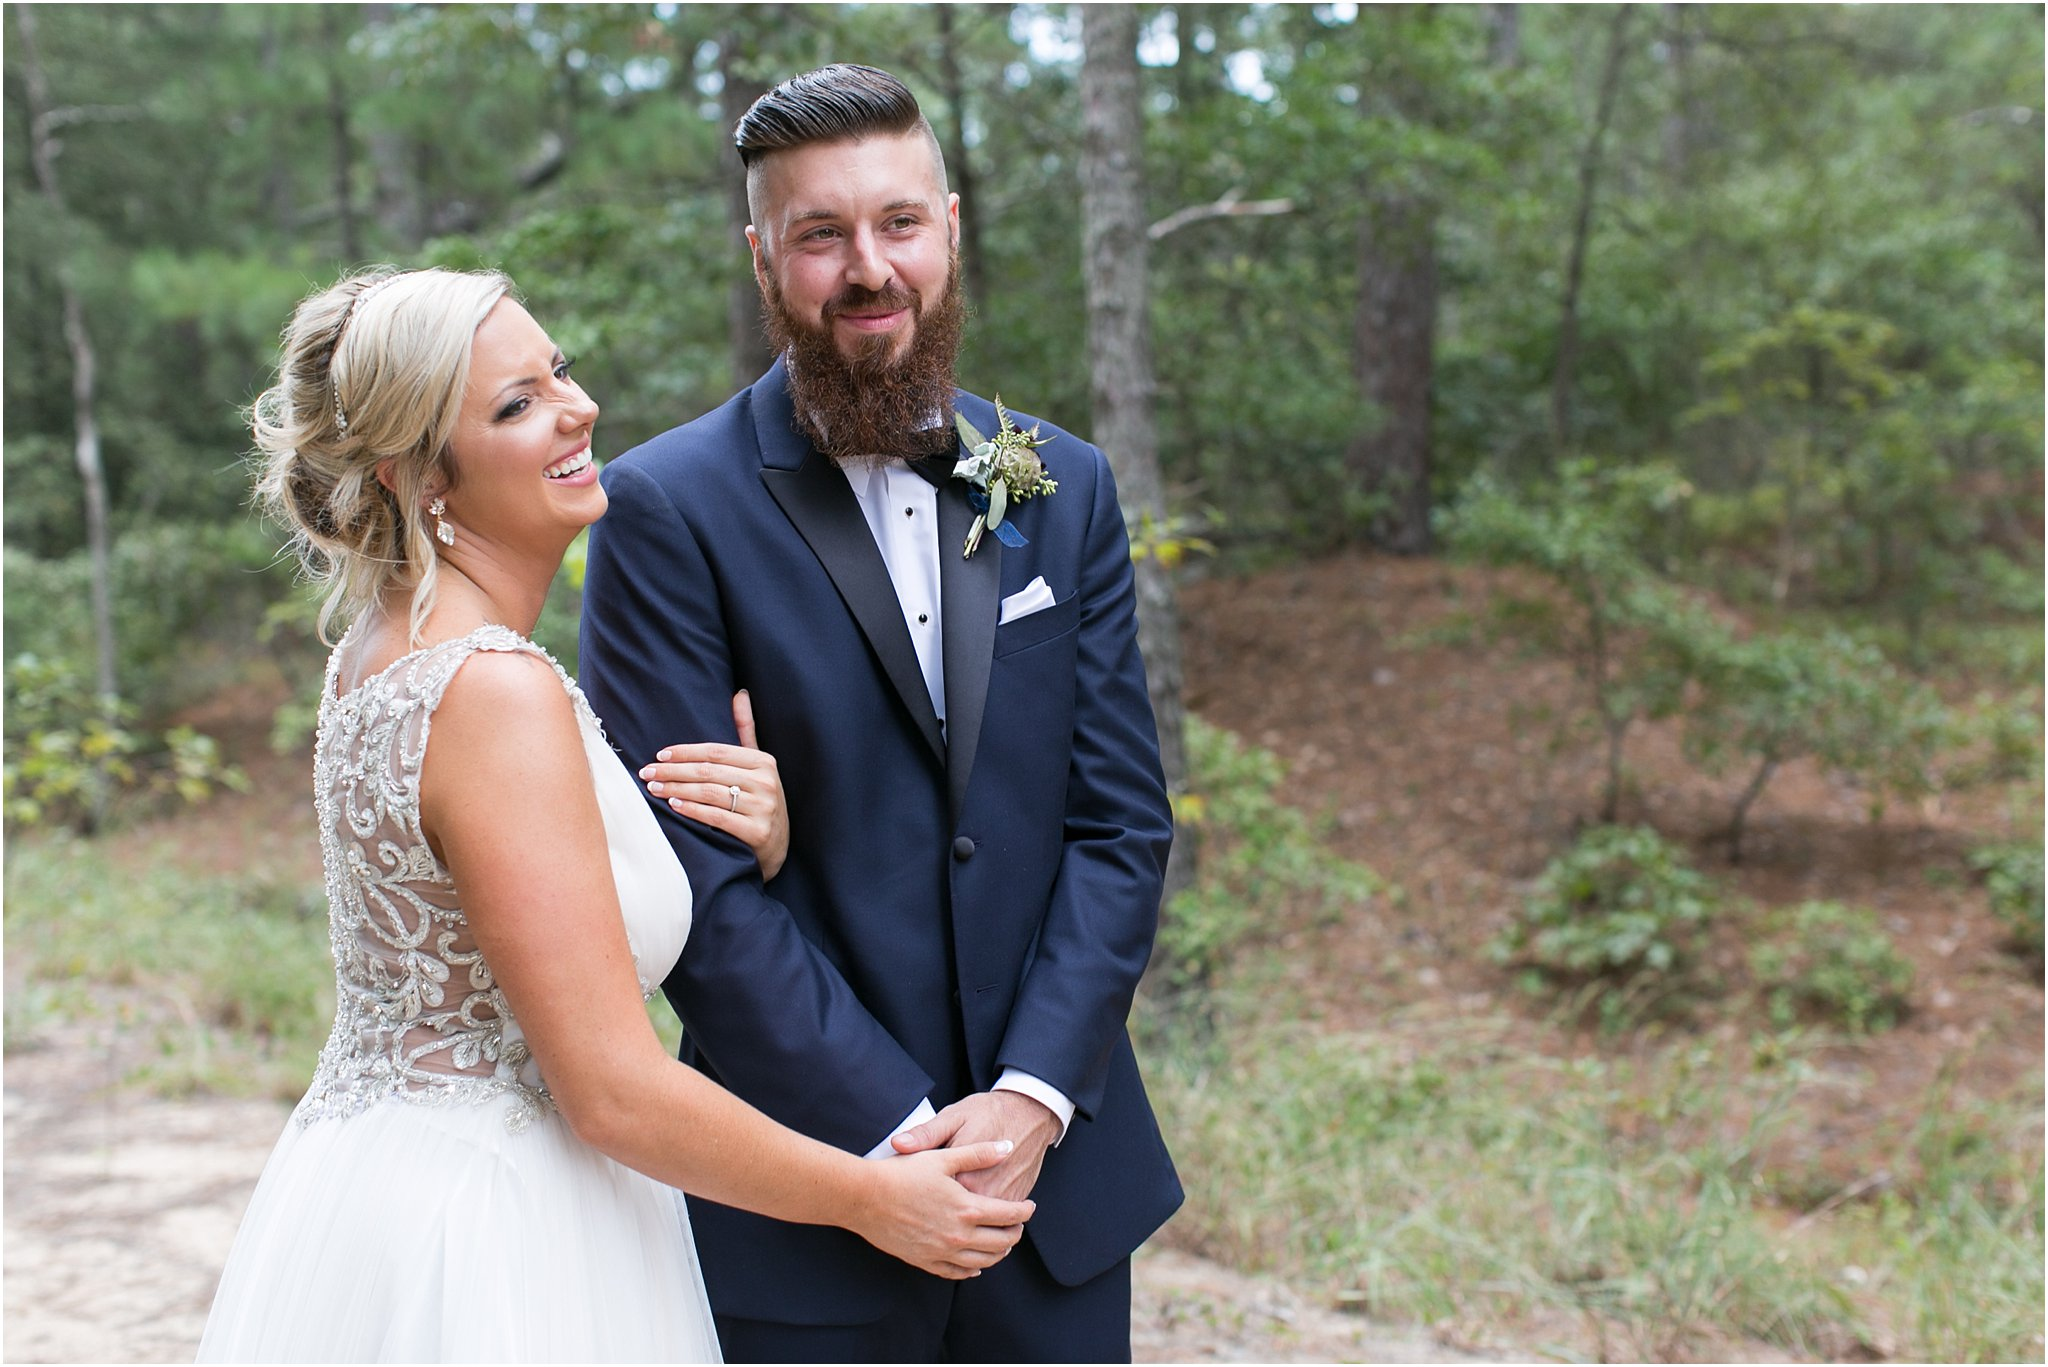 jessica_ryan_photography_virginia_wedding_photographer_candid_authentic_hampton_roads_wedding_photography_marina_shores_yacht_club_first_landing_state_park_woodland_theme_garden_3301